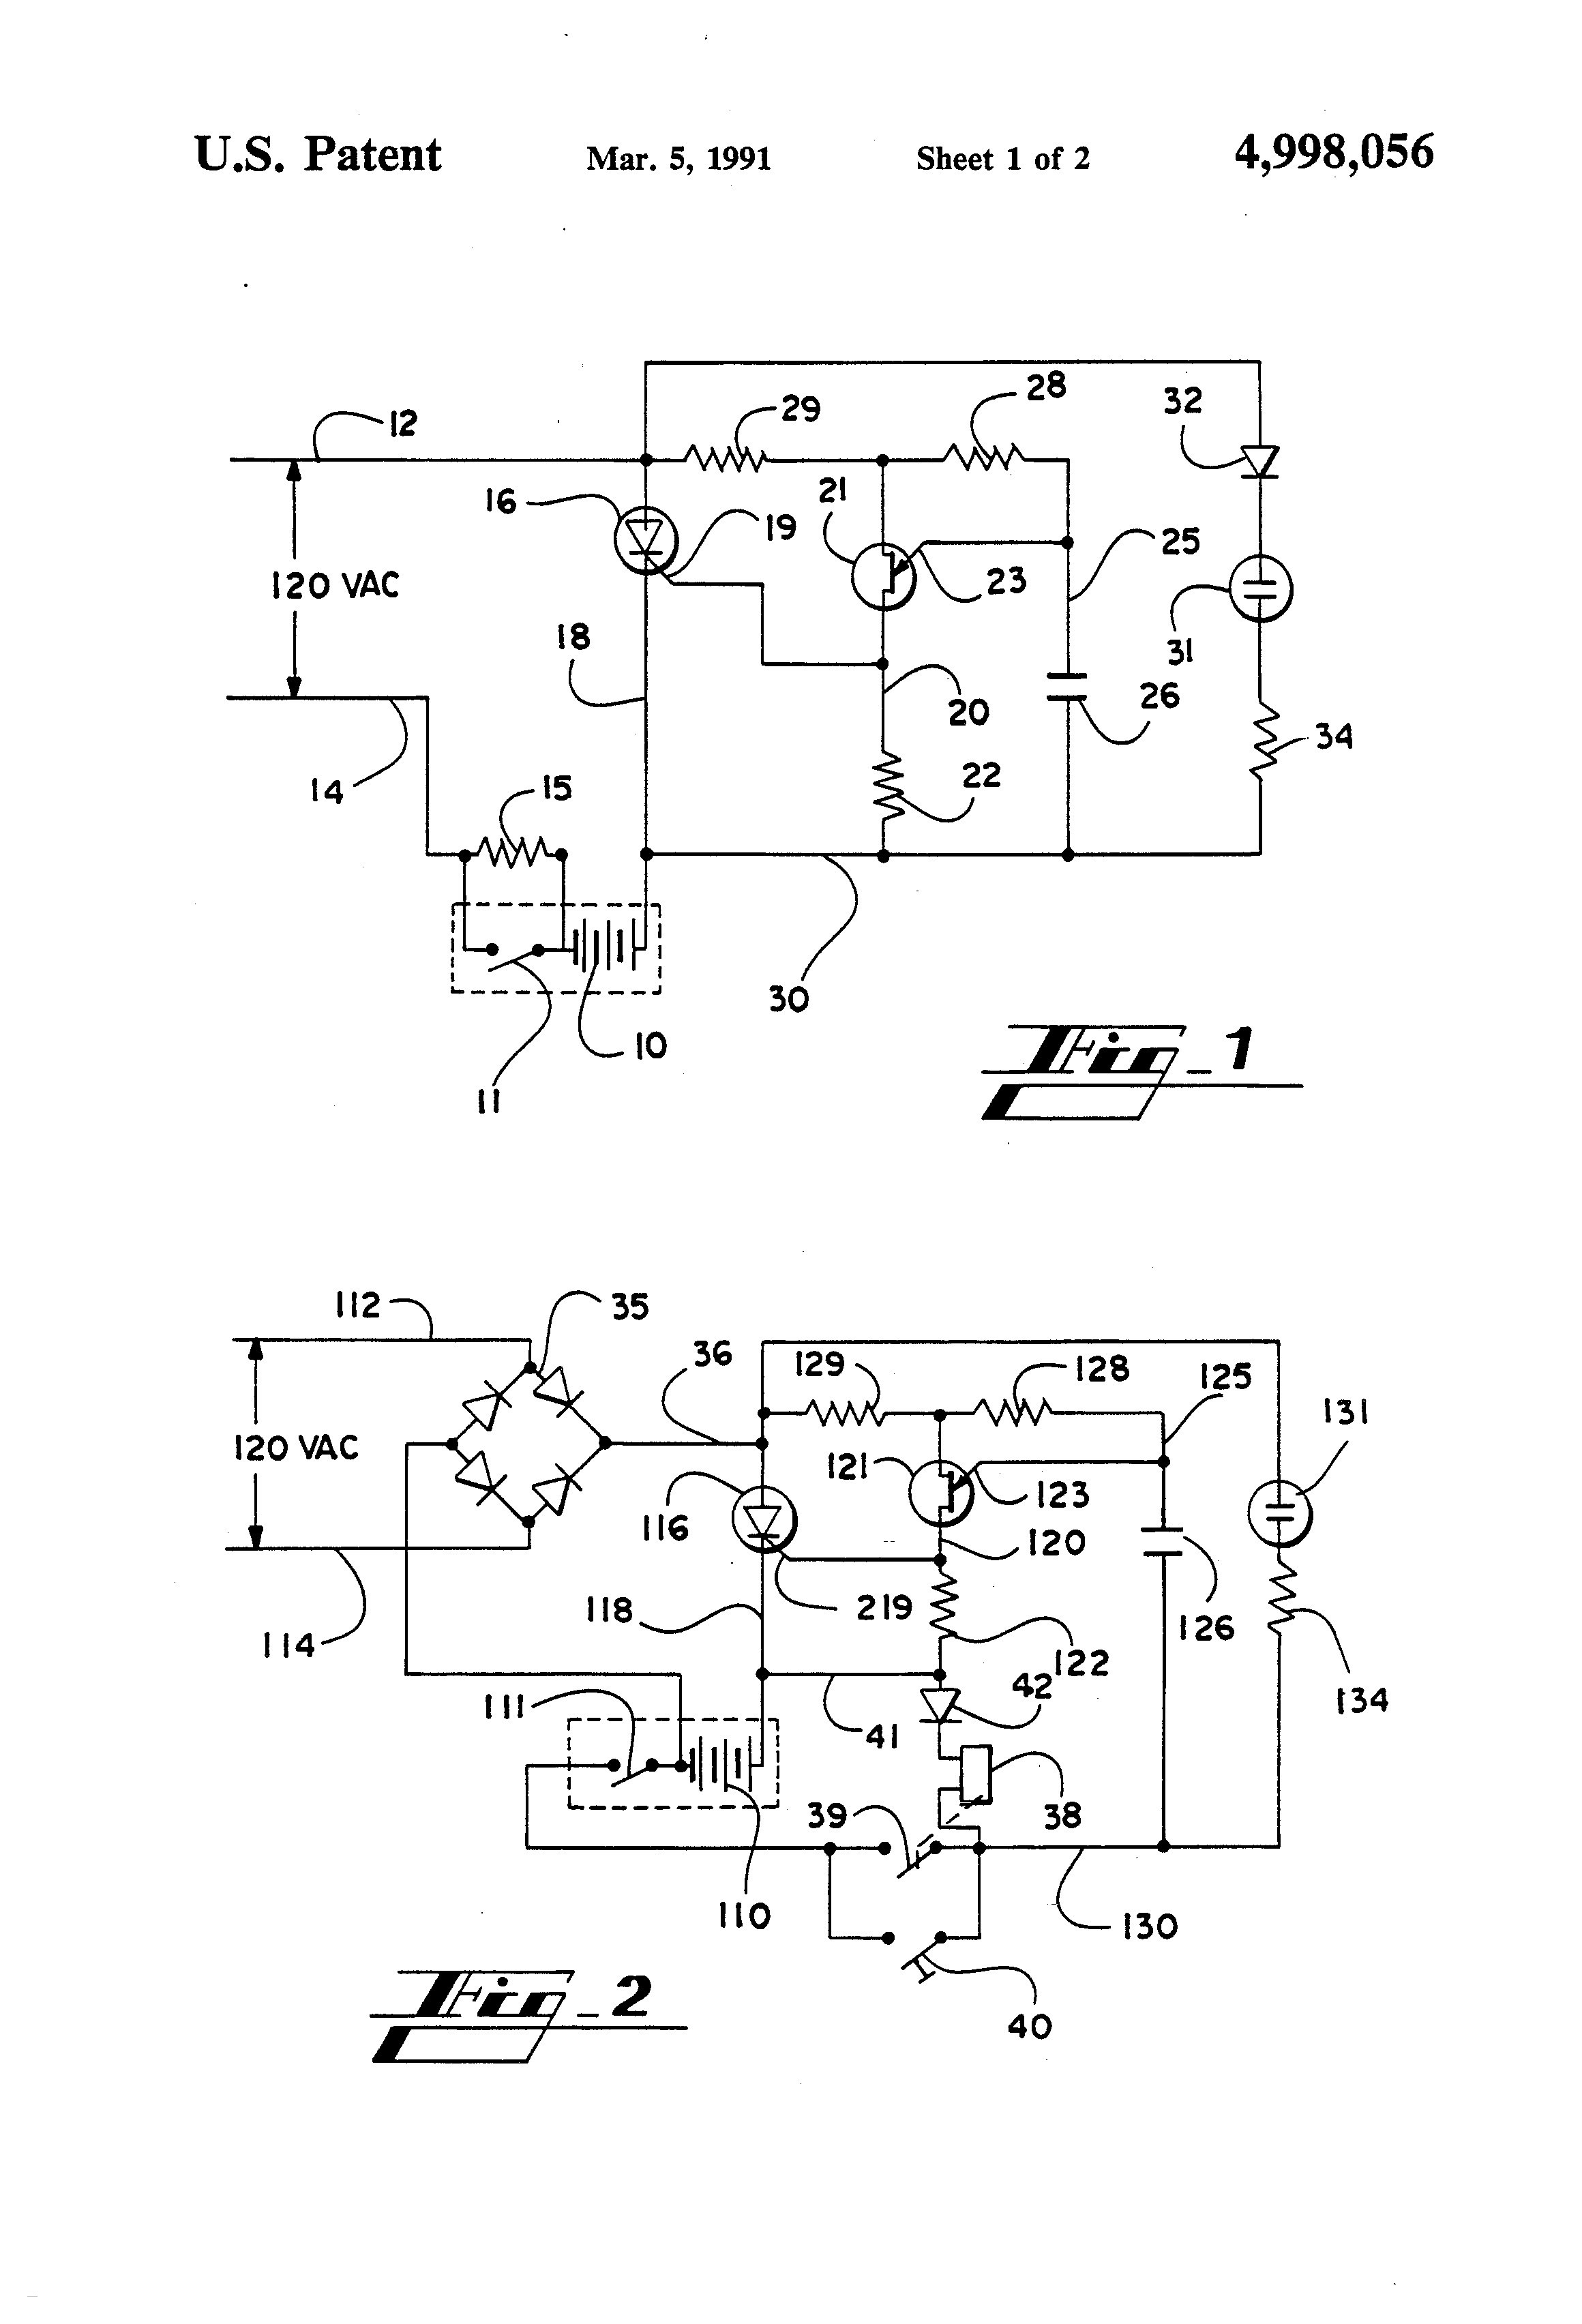 Car Battery Charger Circuit Diagram | My Wiring DIagram